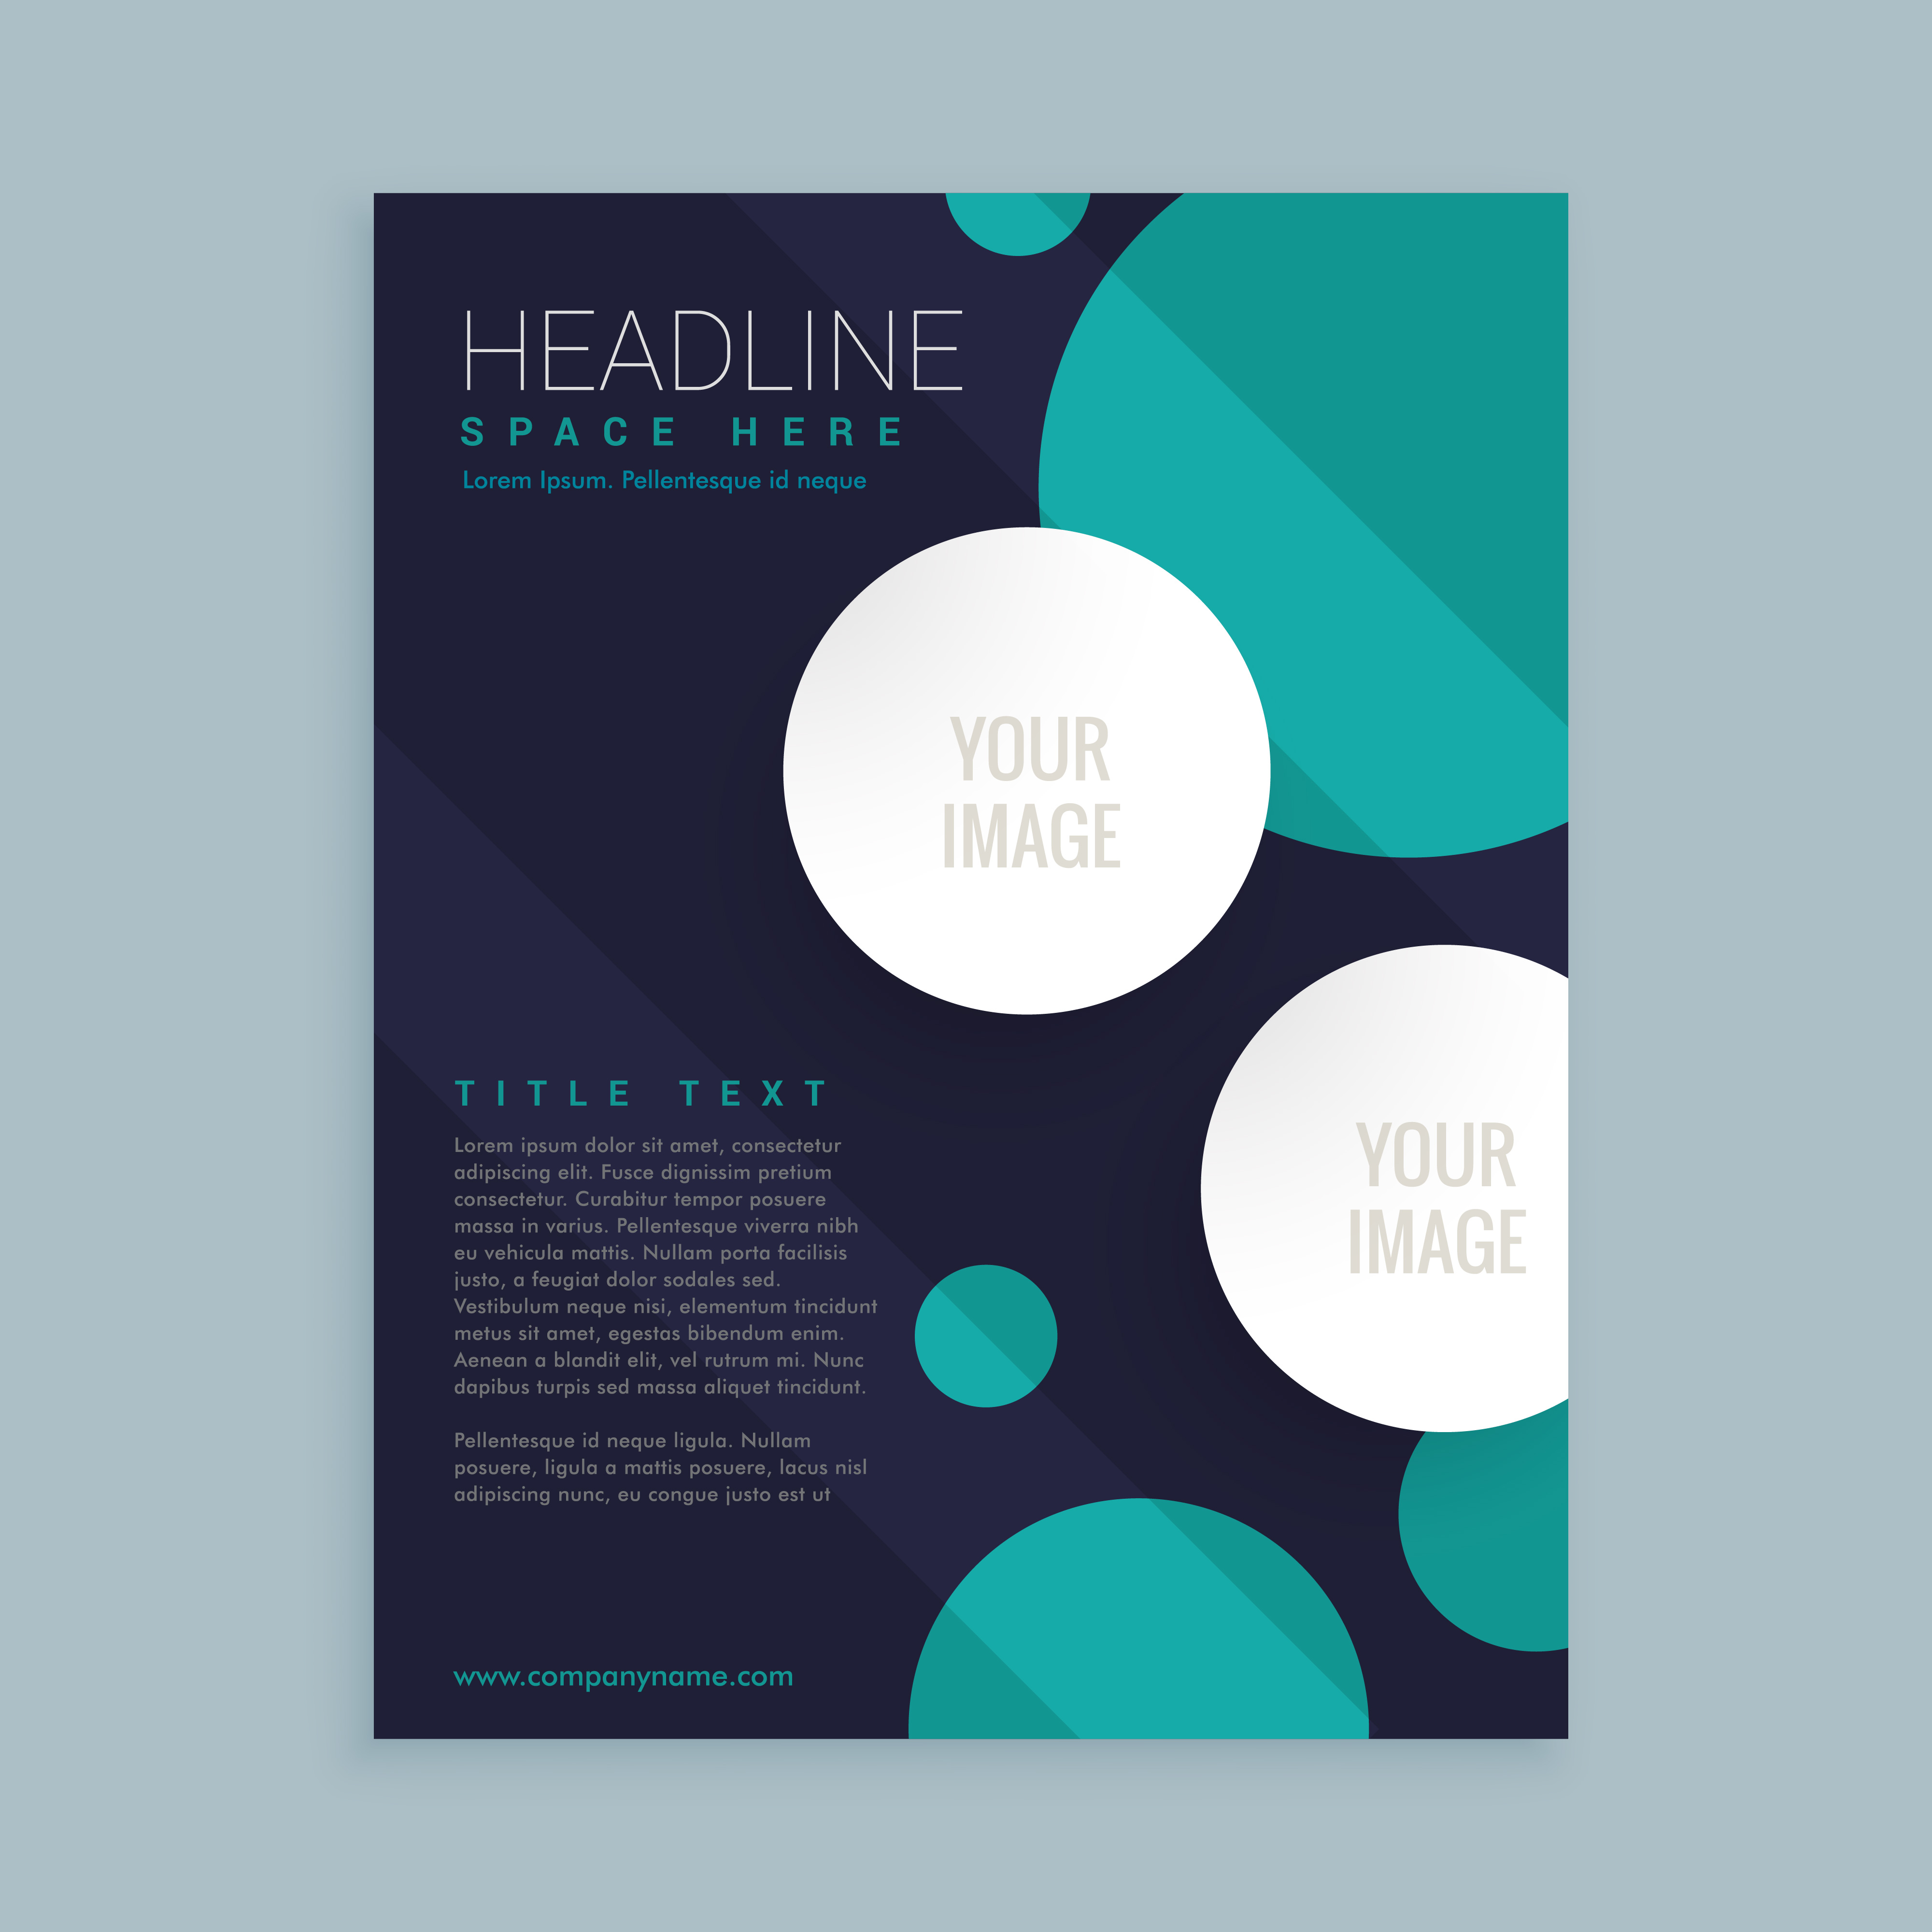 Template Designs: Flyer Brochure Template Design With Circles